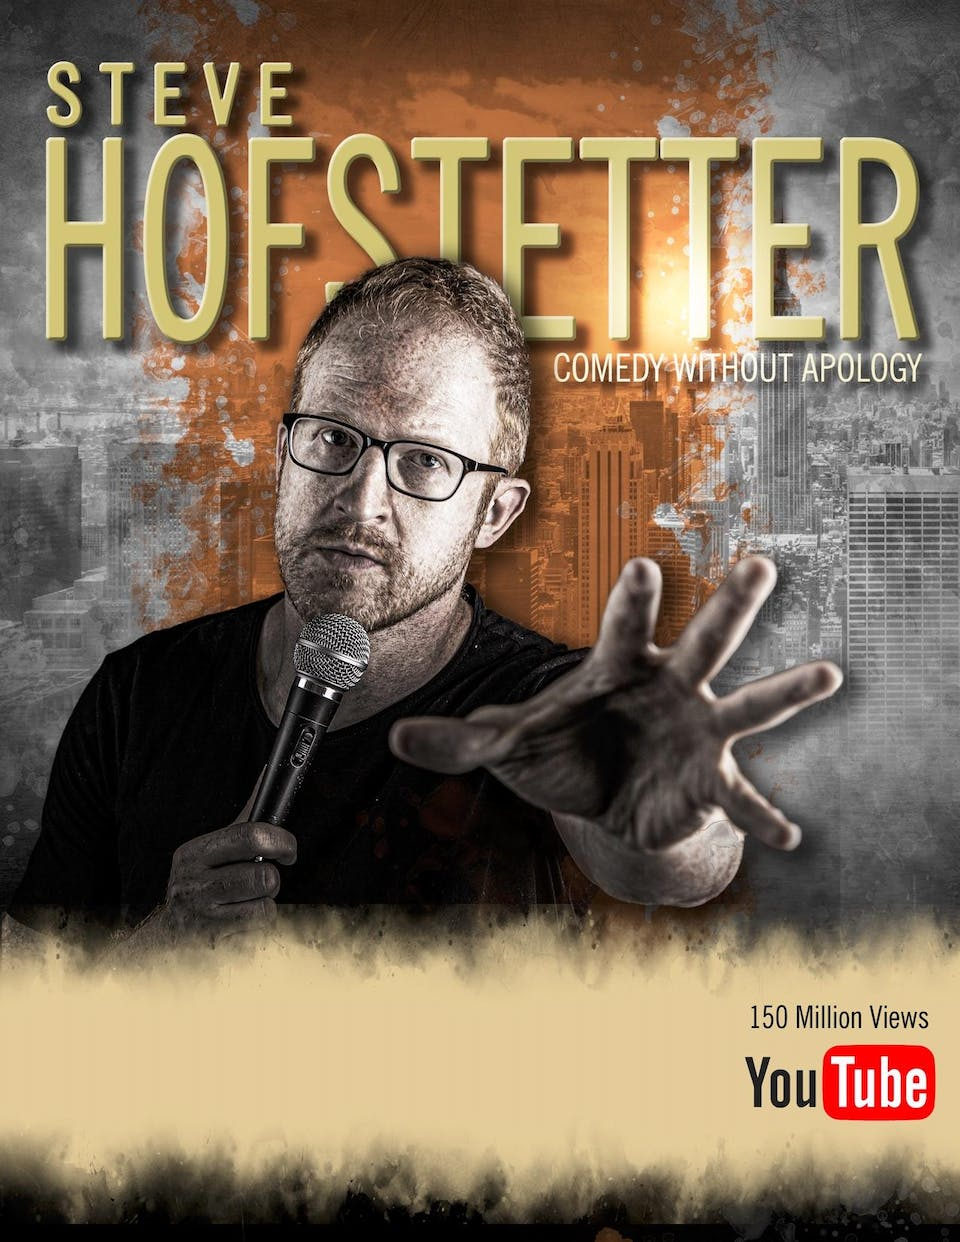 Steve Hofstetter: Comedy Without Apology